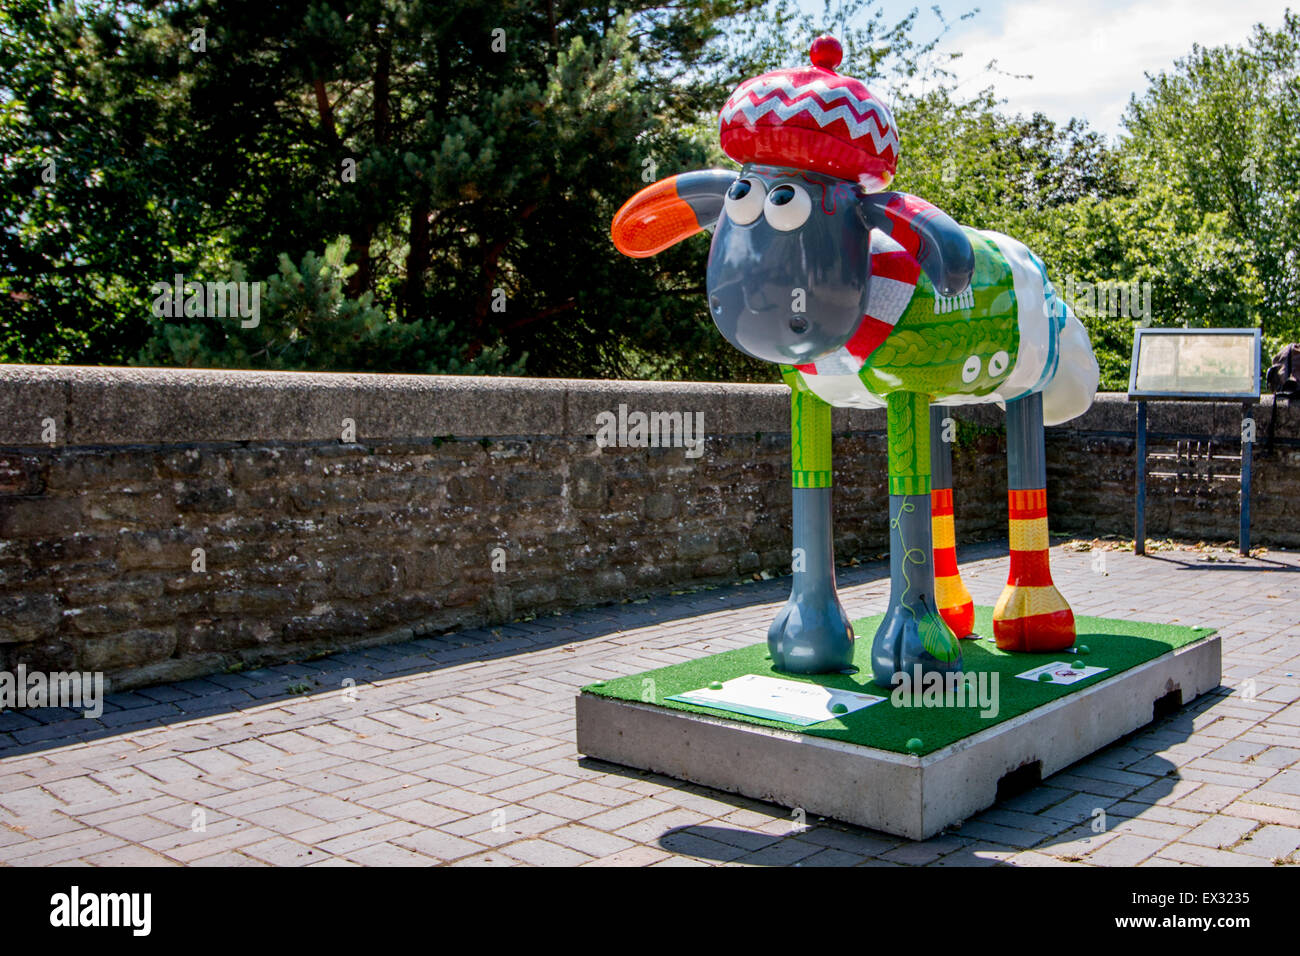 KNITWIT by Adrian Barclay in Bristol's Castle Park. Part of the Shaun the Sheep Art Trail across Bristol Summer - Stock Image